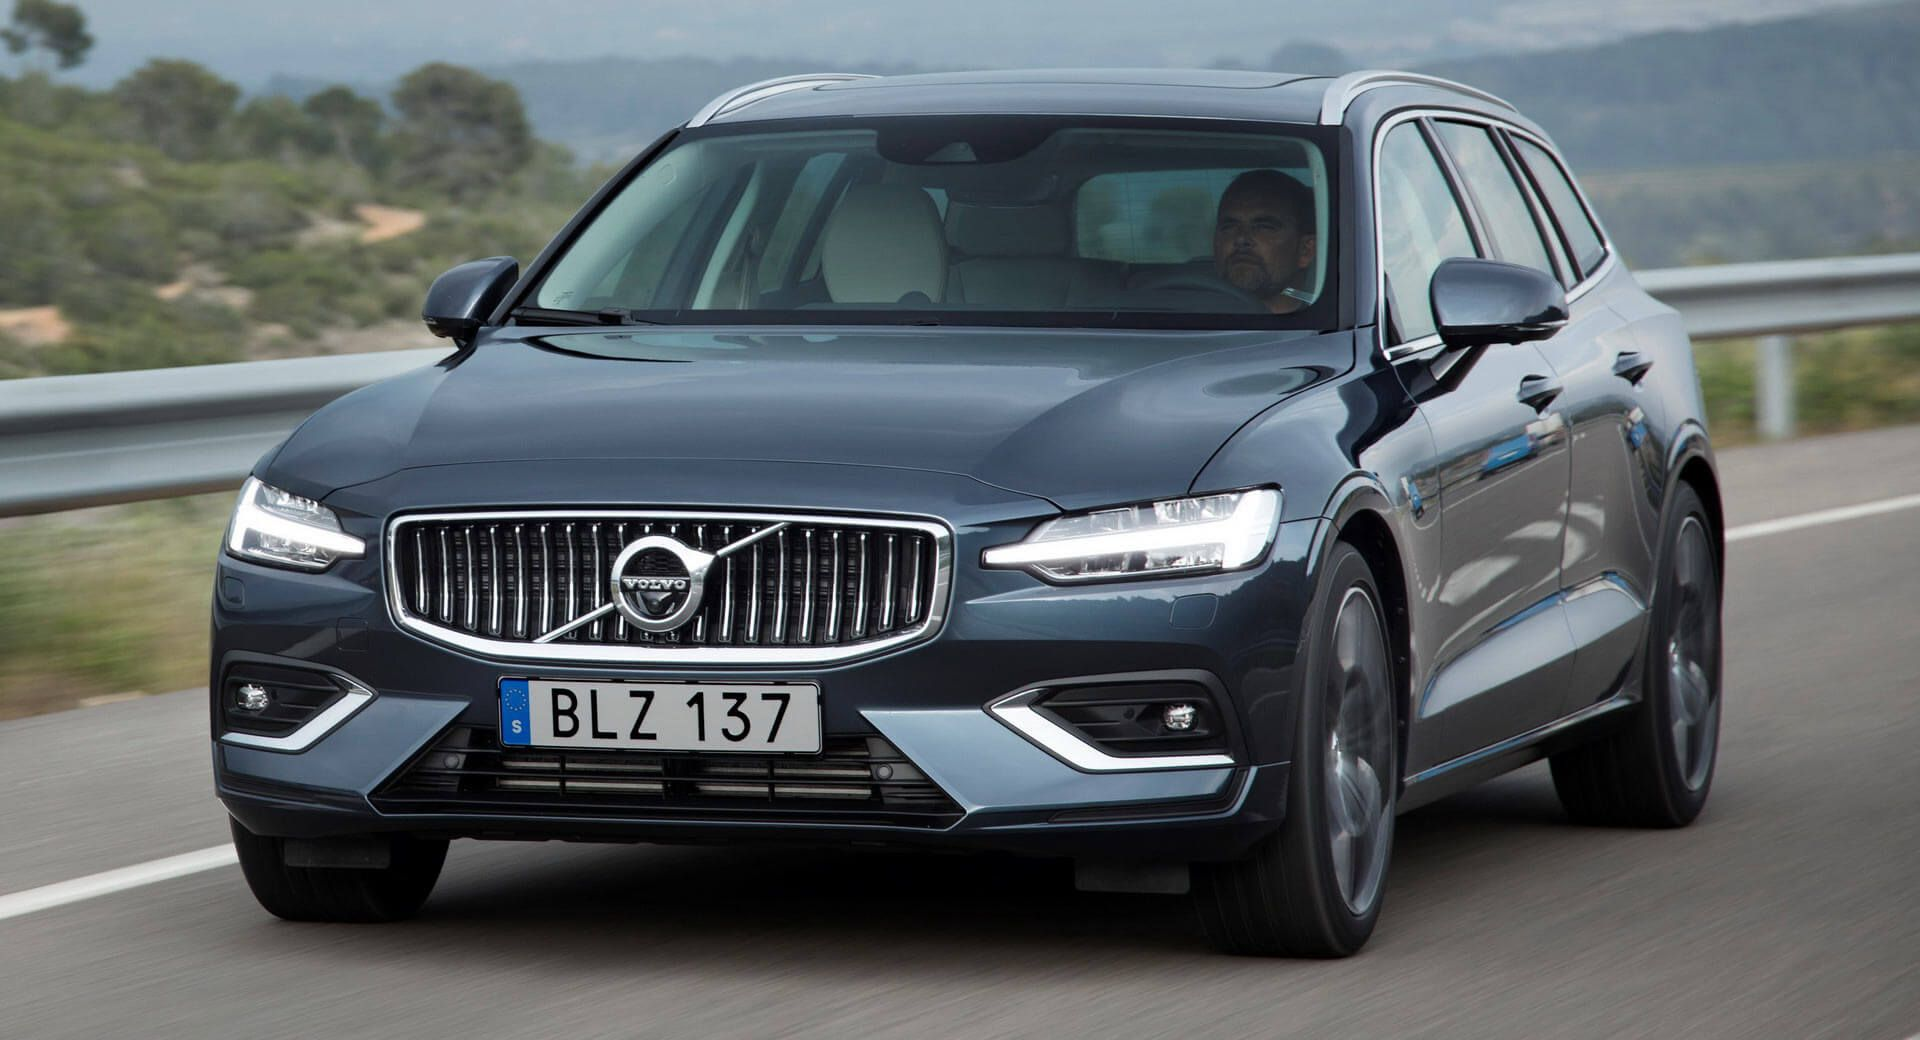 all new volvo v60 priced from 31 810 in uk deliveries late q3 2018 carscoops. Black Bedroom Furniture Sets. Home Design Ideas